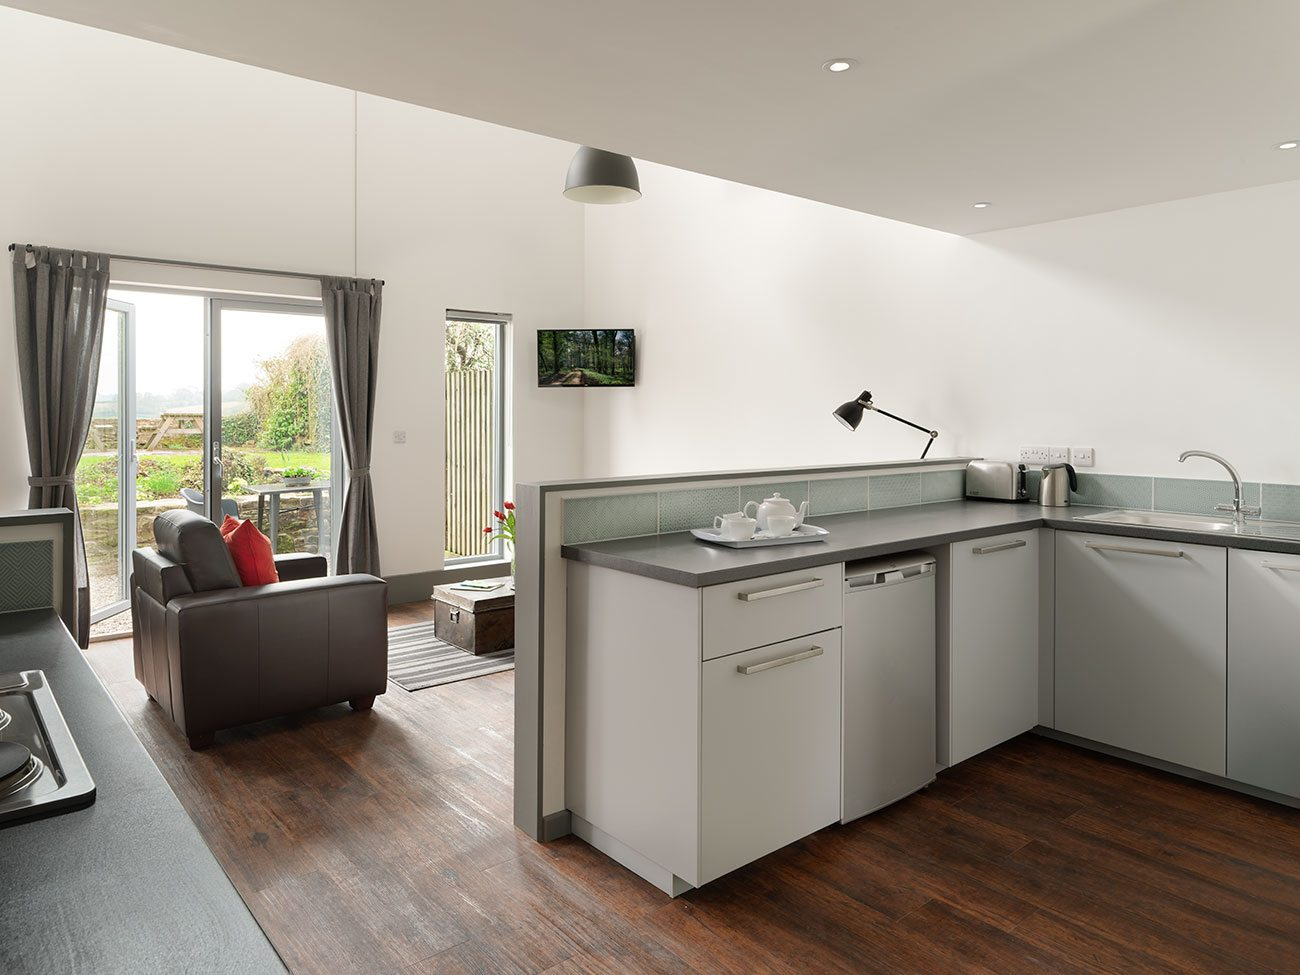 Westcoast Windows supply Swedish composite windows and doors for luxury self-catering holiday apartments in Gloucestershire